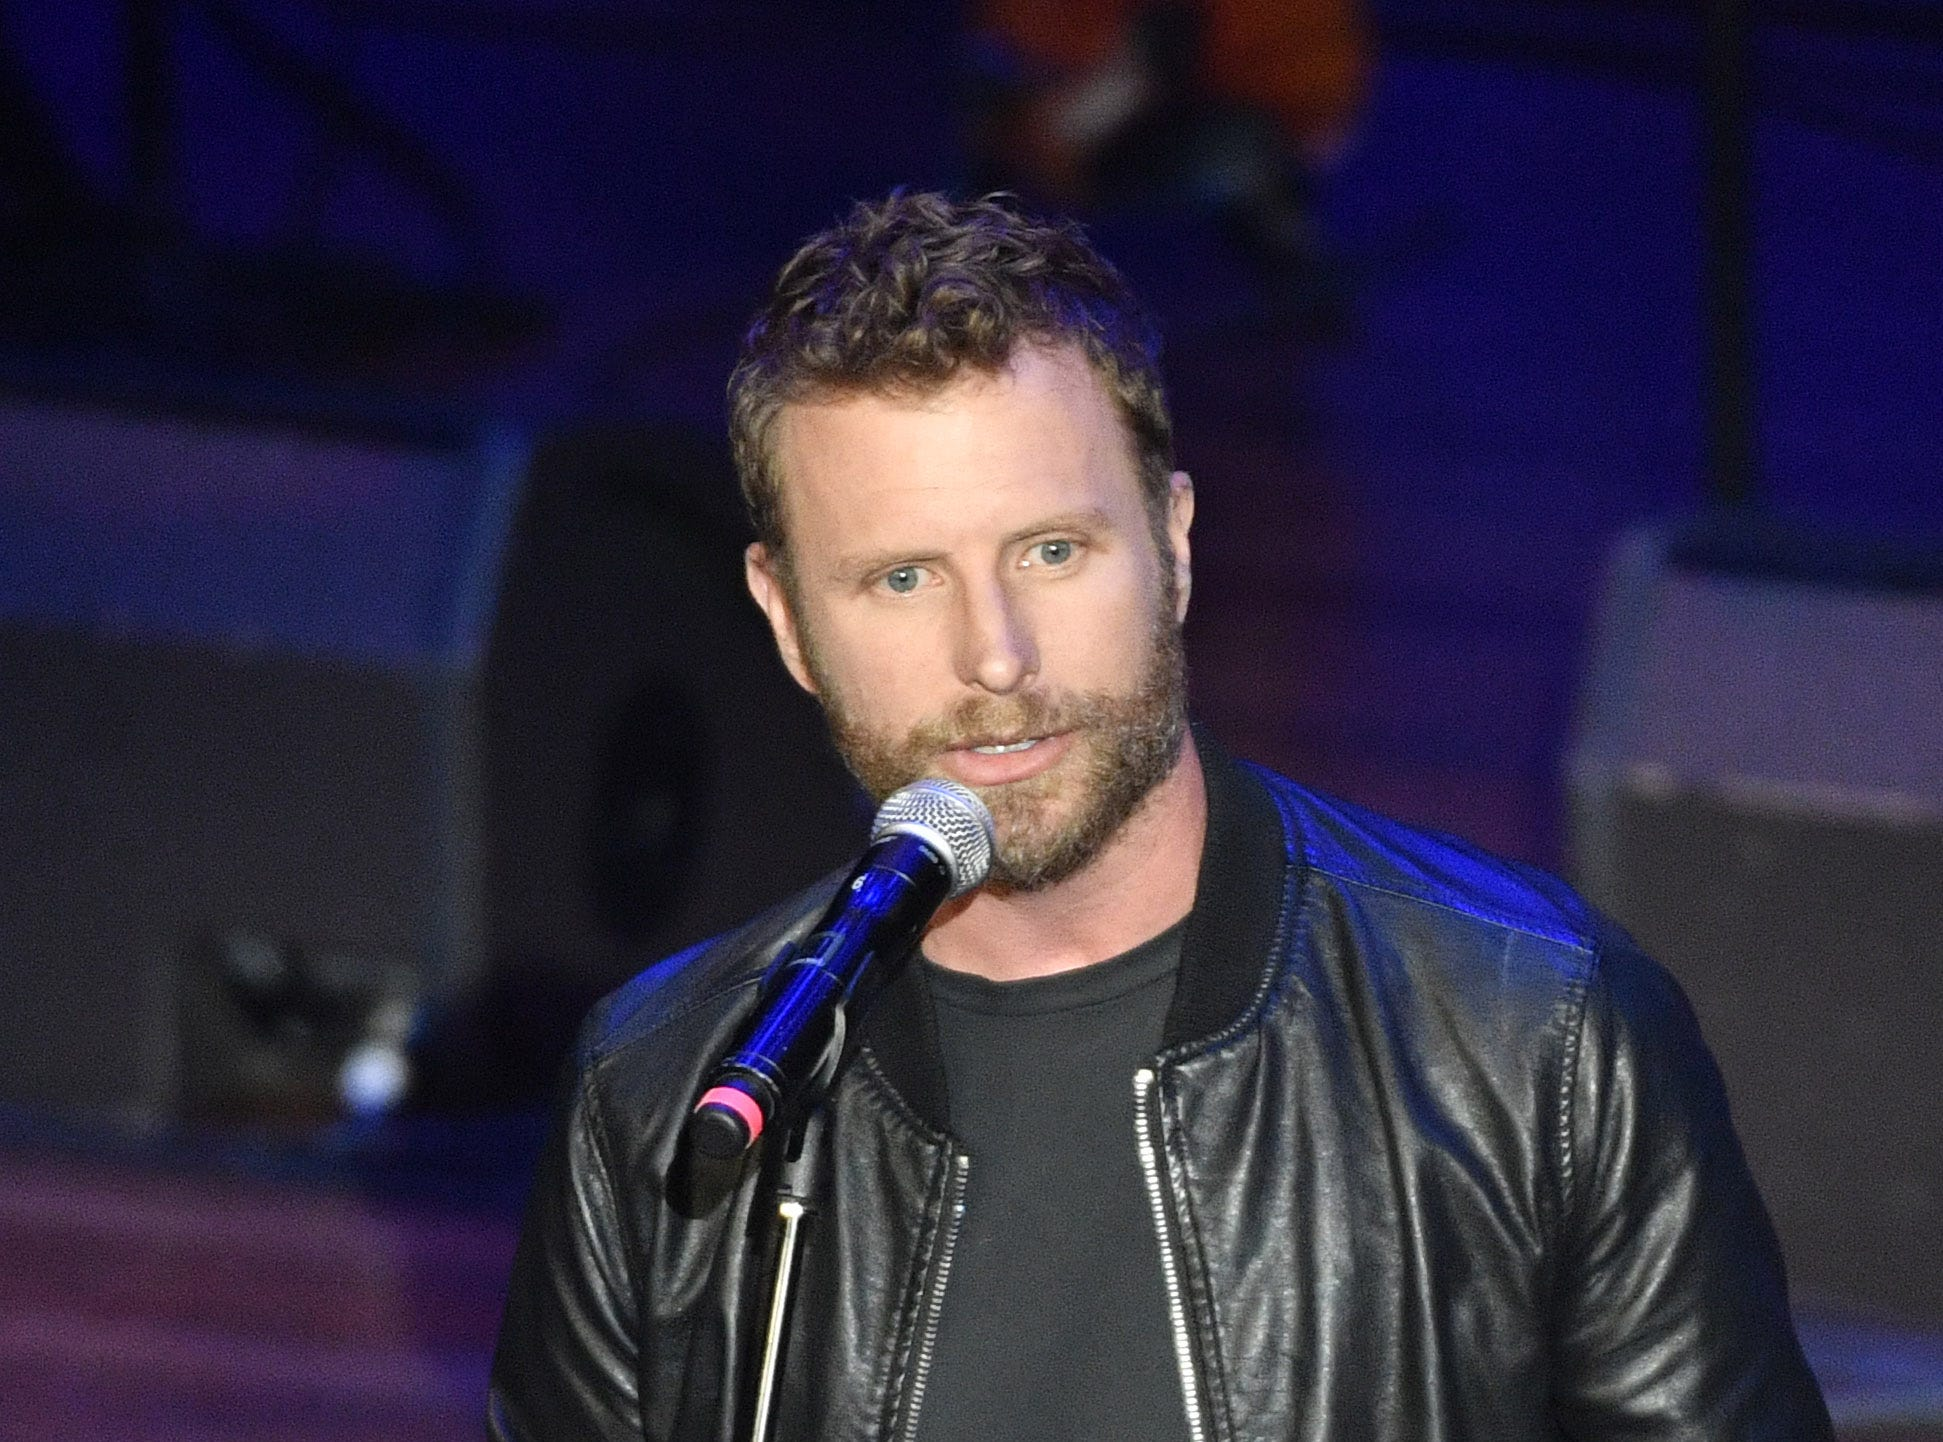 Dierks Bentley receives the Merle Haggard Spirit Award at ACM Honors on Aug. 22, 2018, in Nashville.